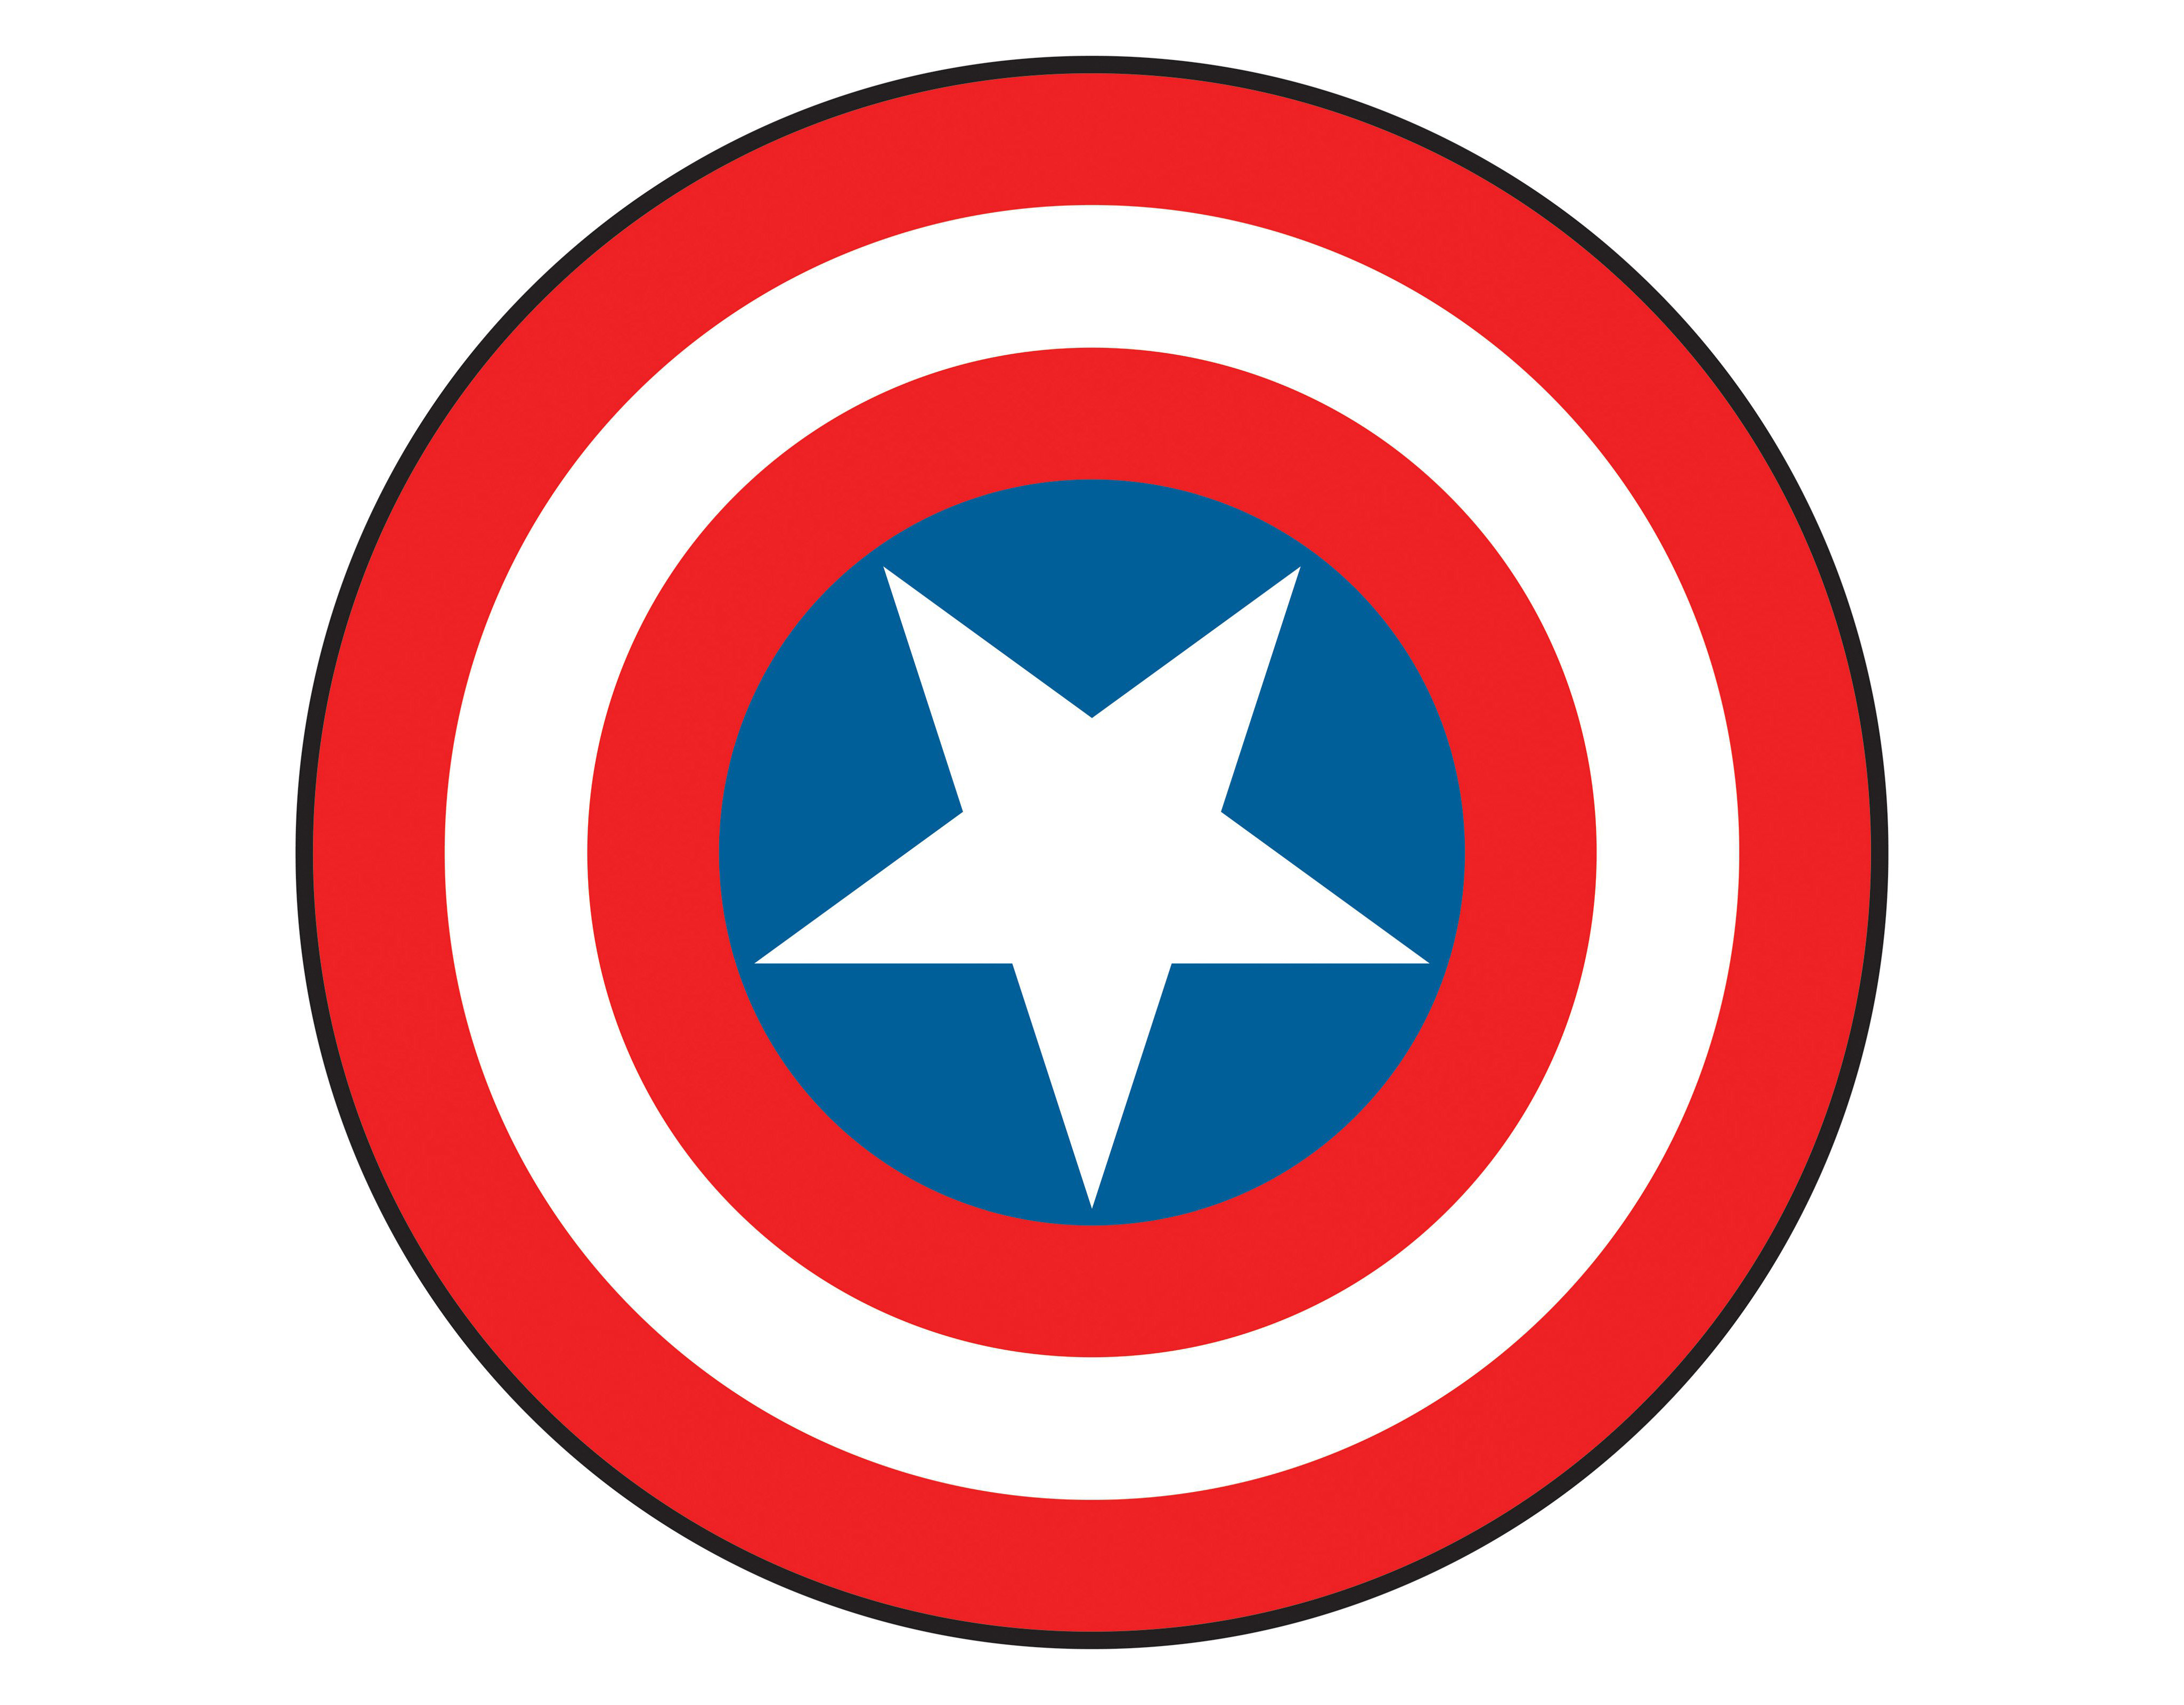 Meaning Captain America logo and symbol | history and evolution